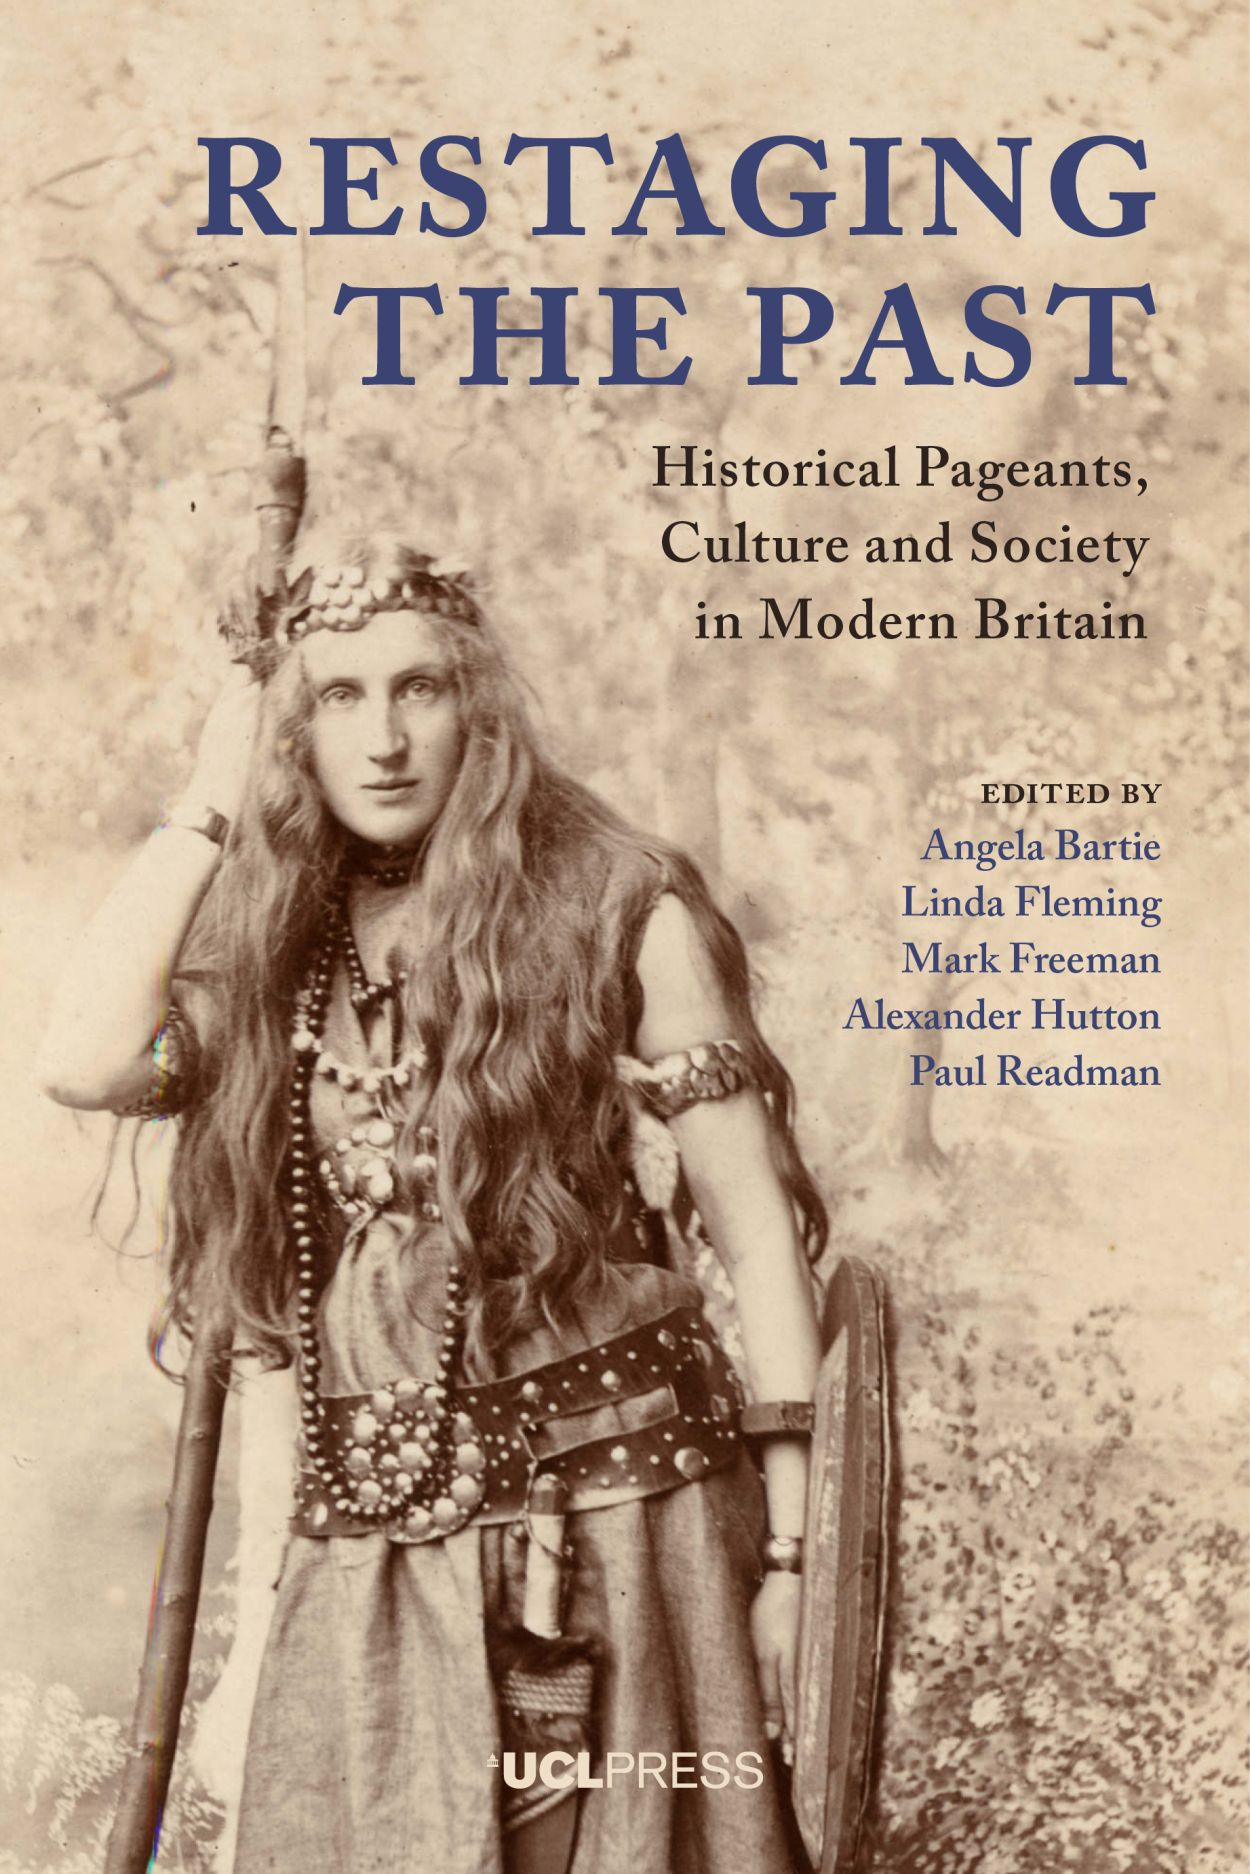 Restaging the Past: Historical Pageants, Culture and Society in Modern Britain